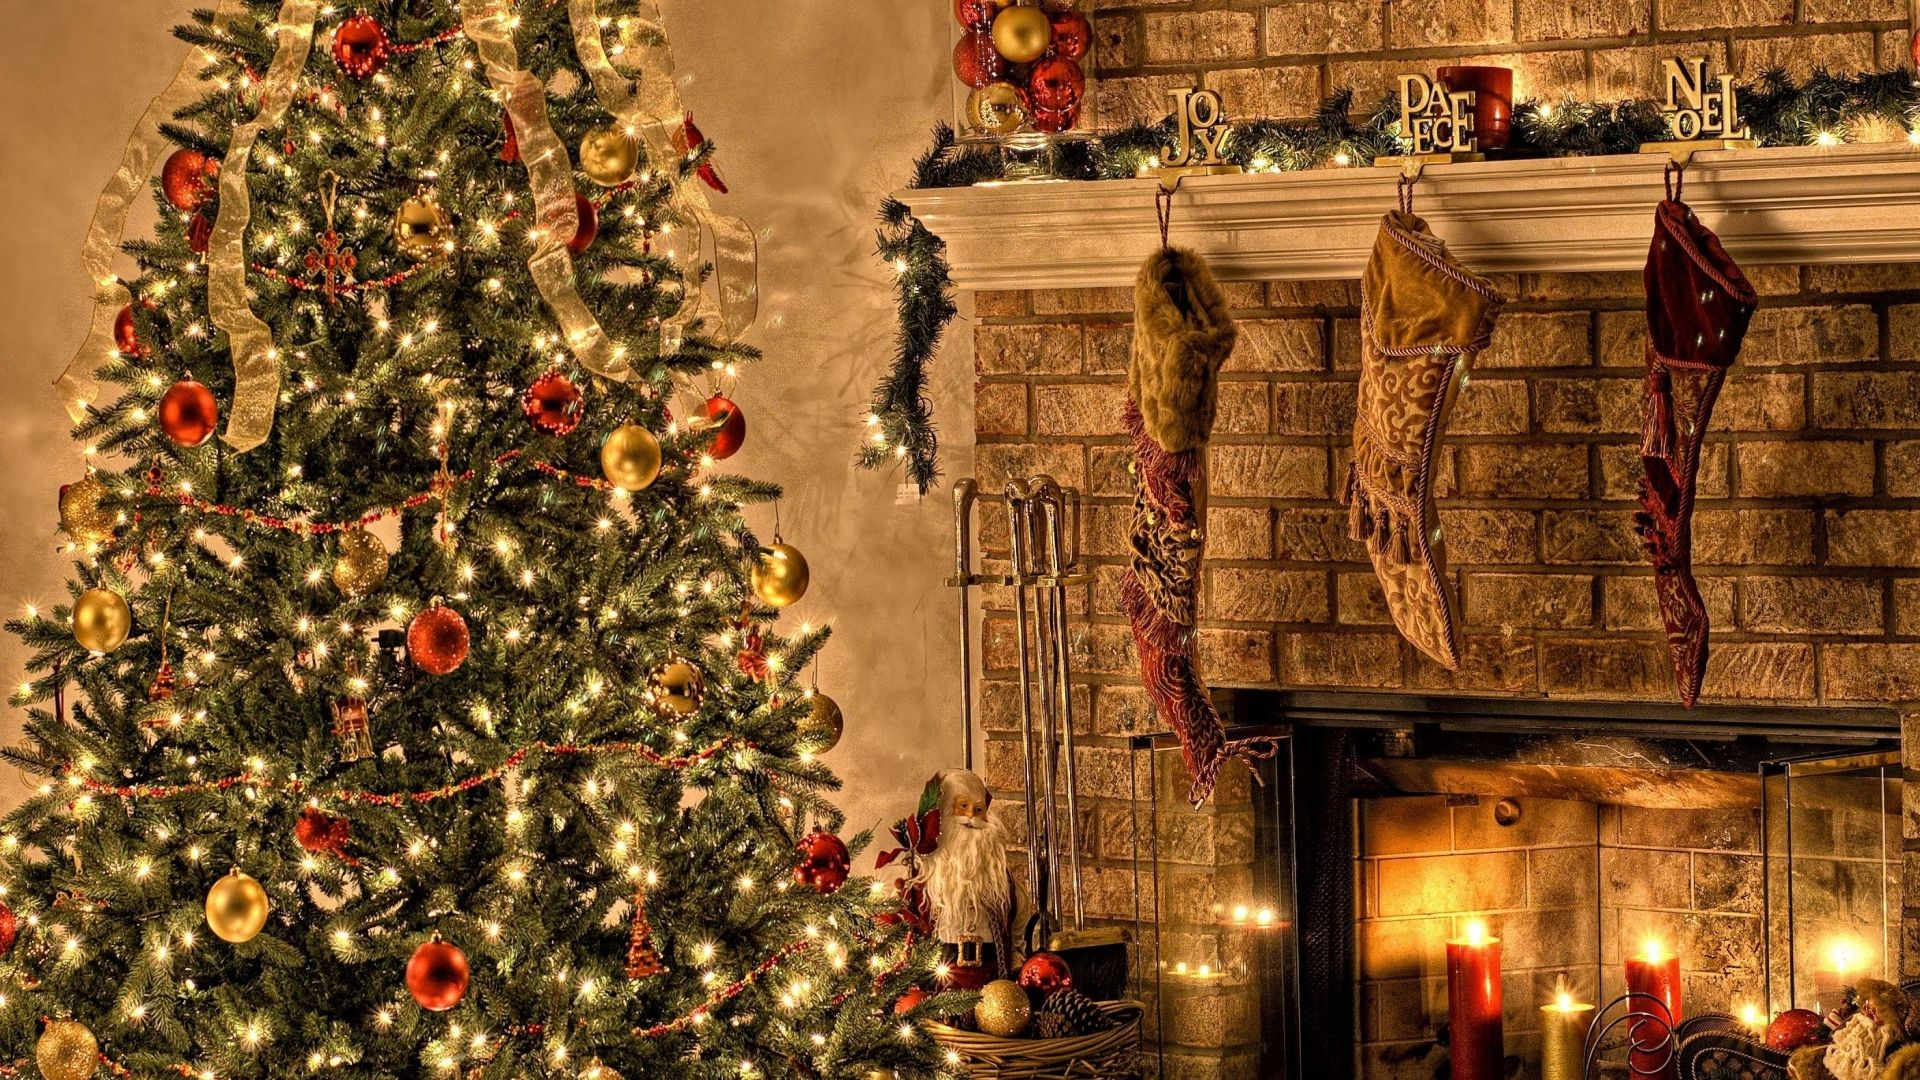 1920x1080 Wallpaper tree, fire, christmas, holiday